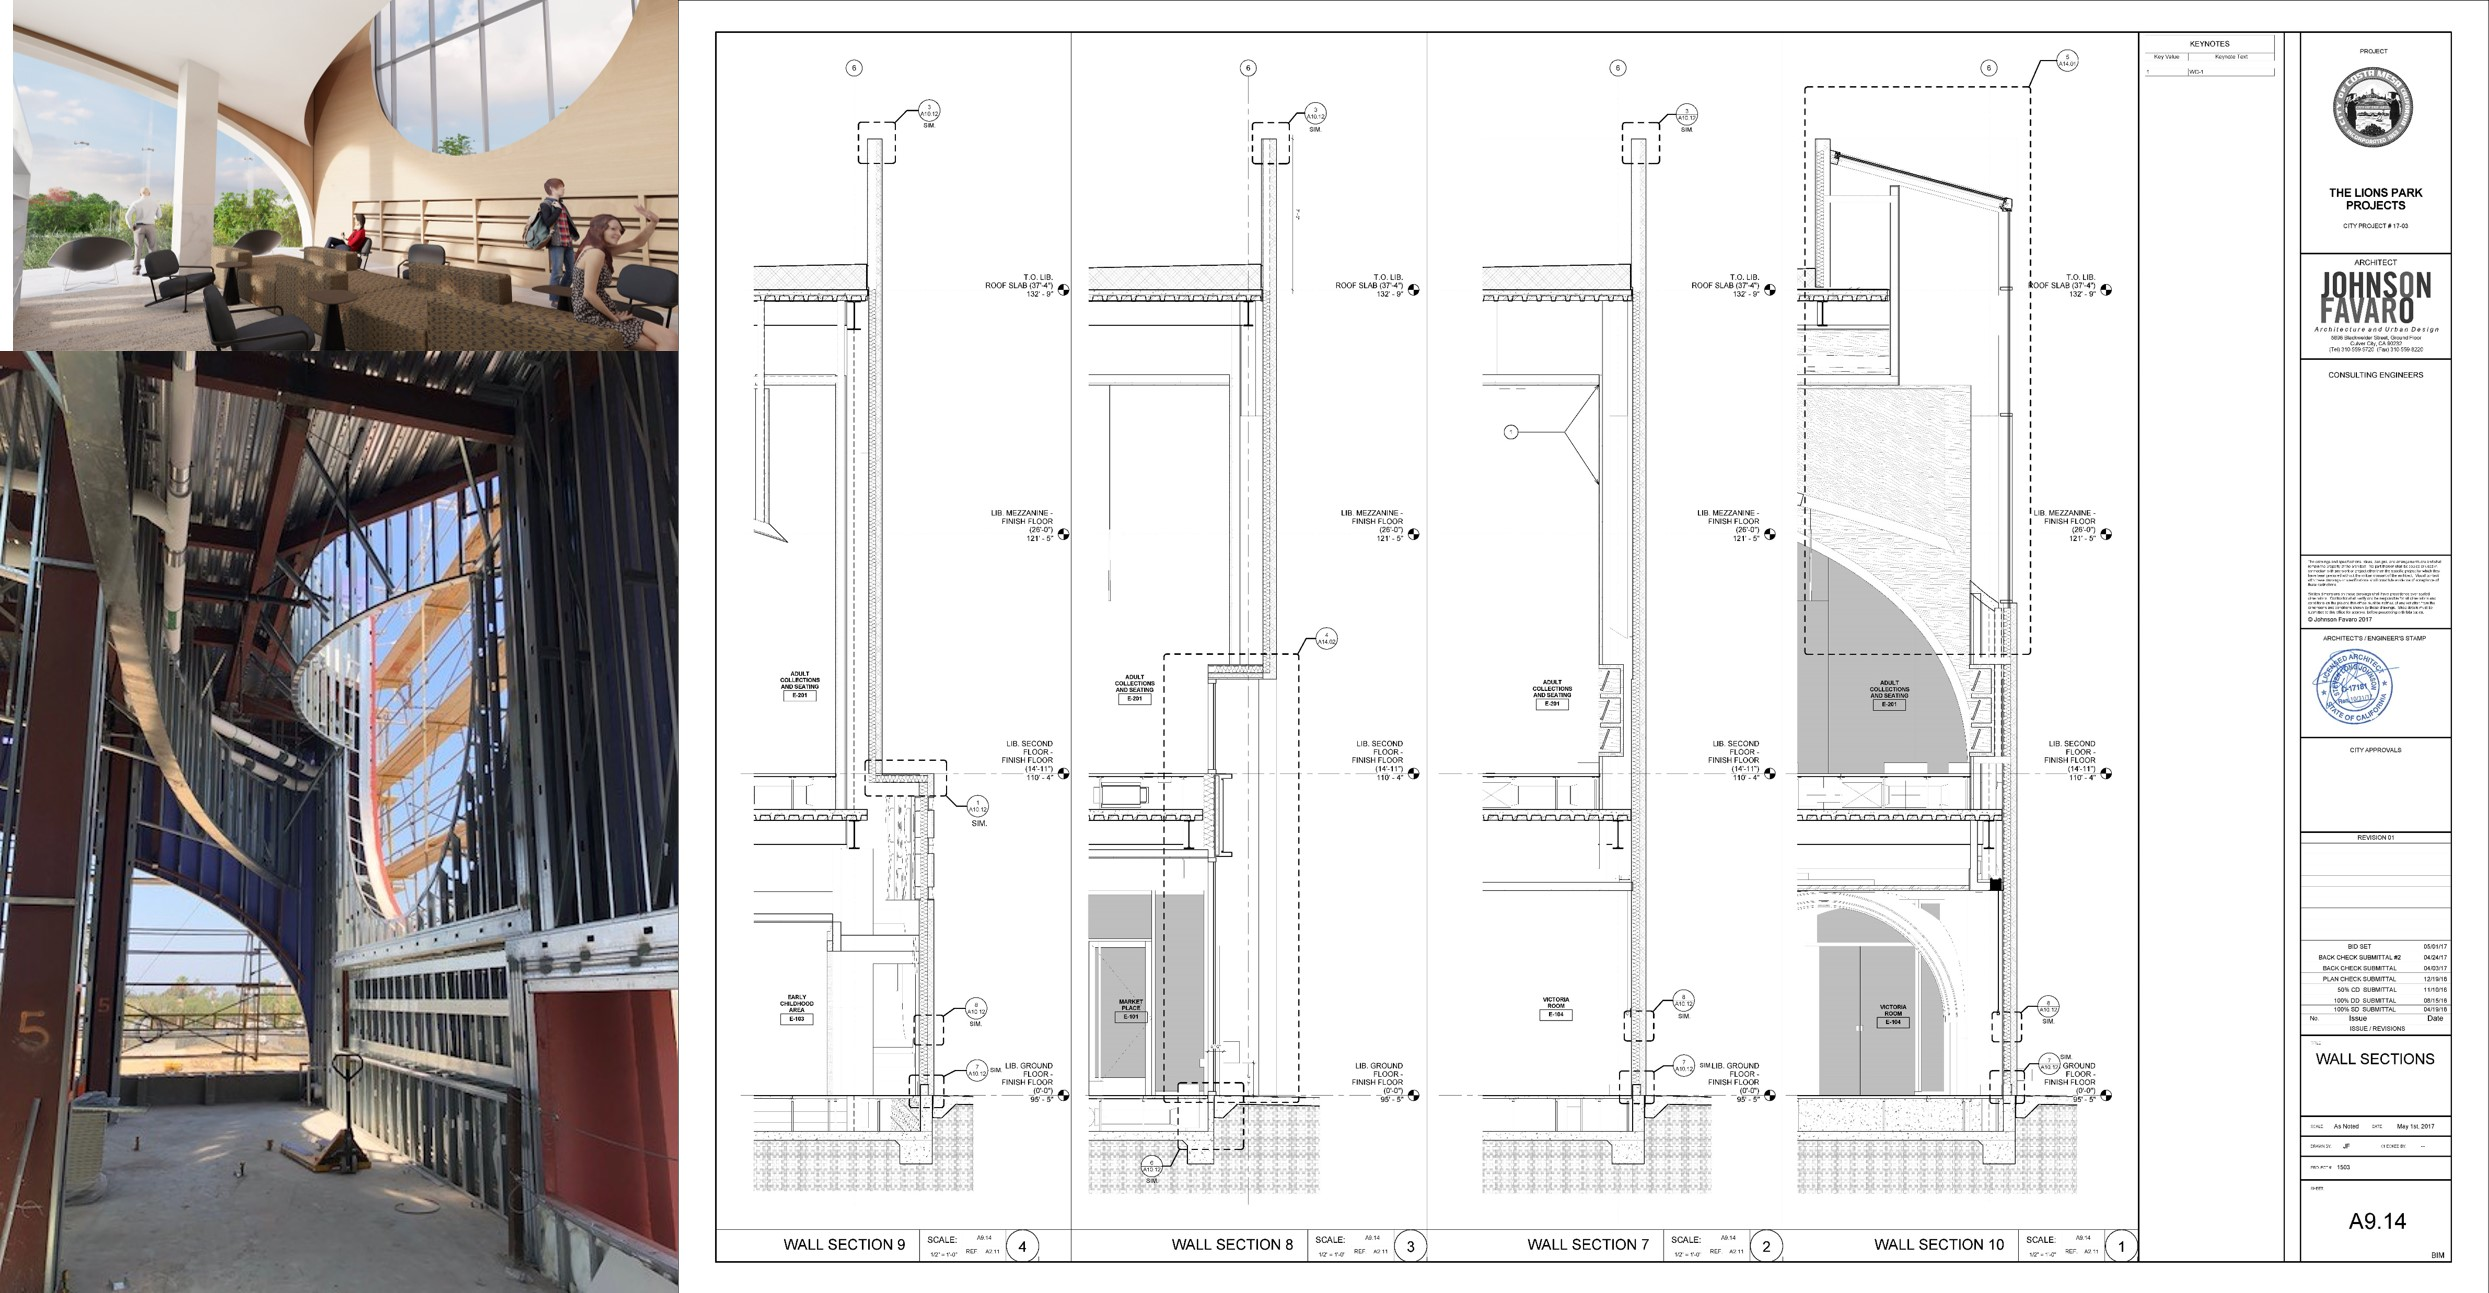 Drawings are the only way to assure that the building will get built as designed. The more the better.